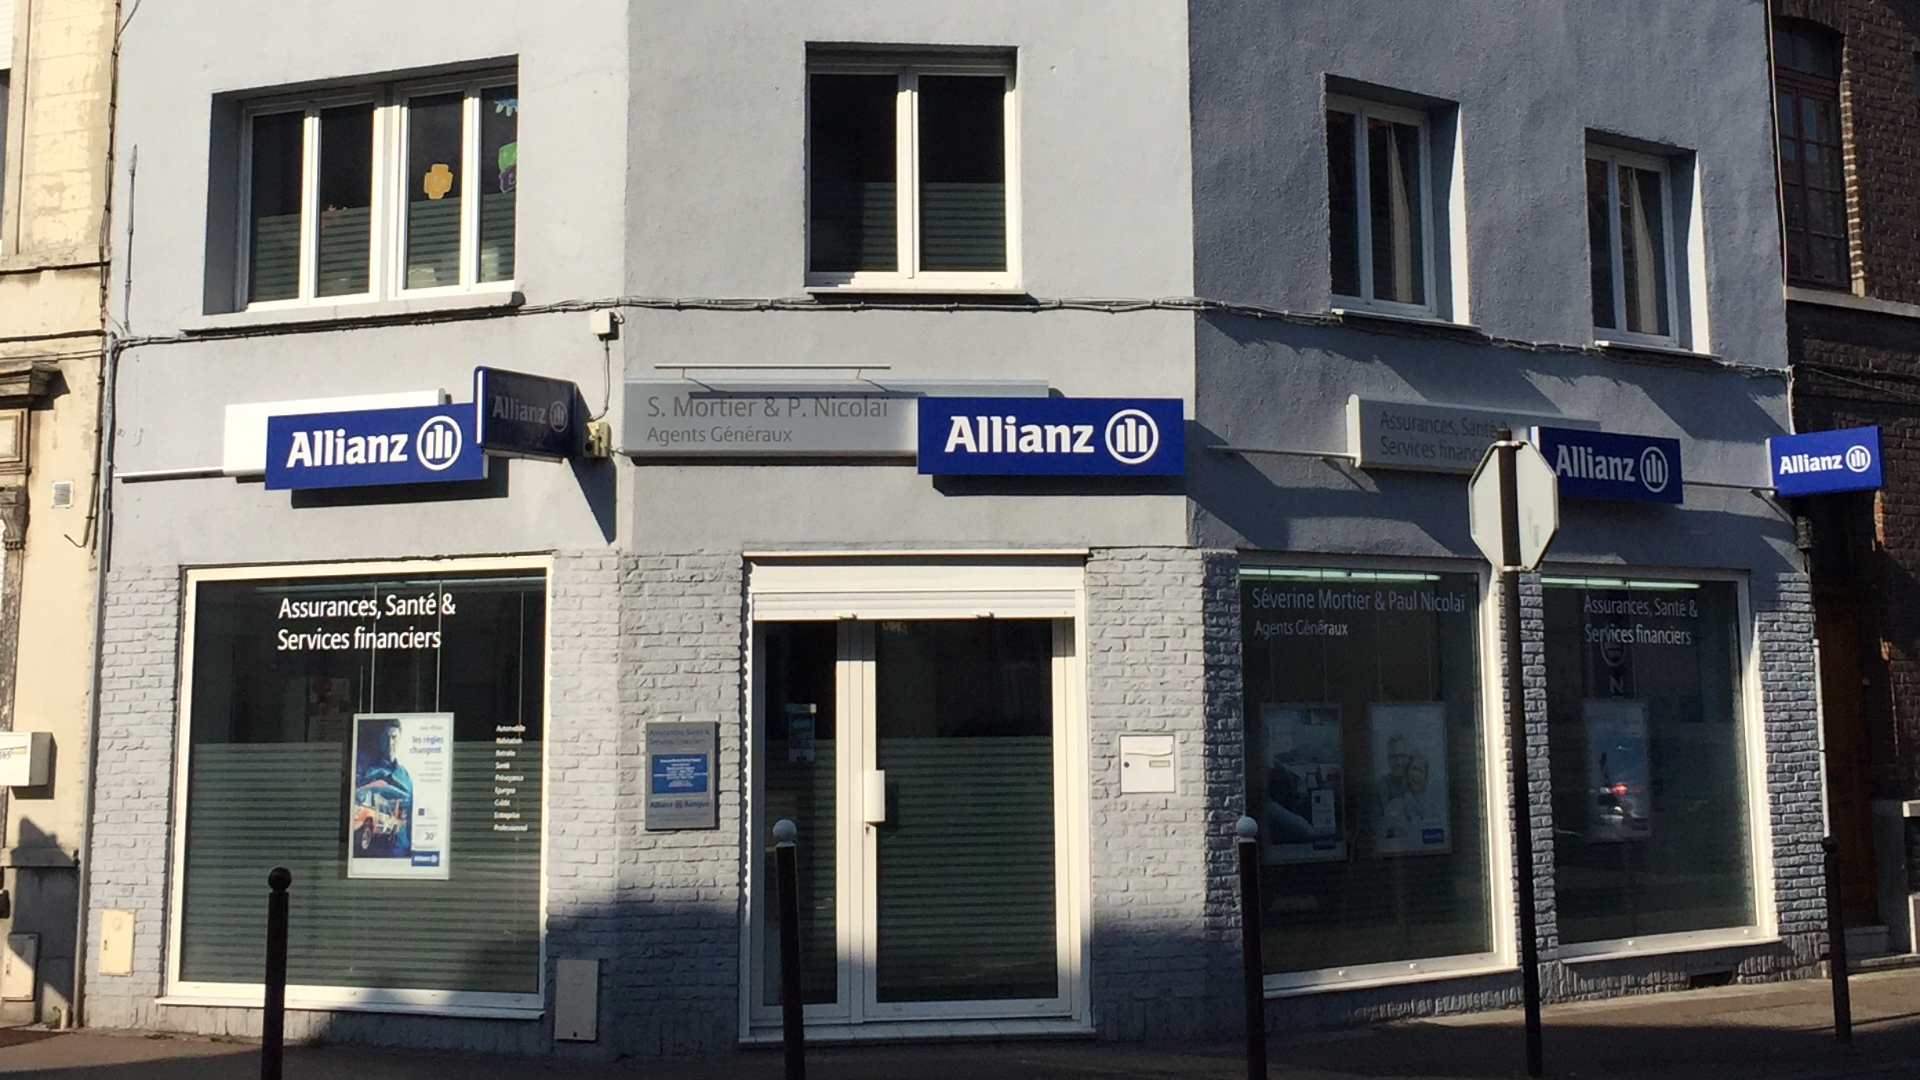 Allianz Tourcoing neuville - Severine & Paul NICOLAI